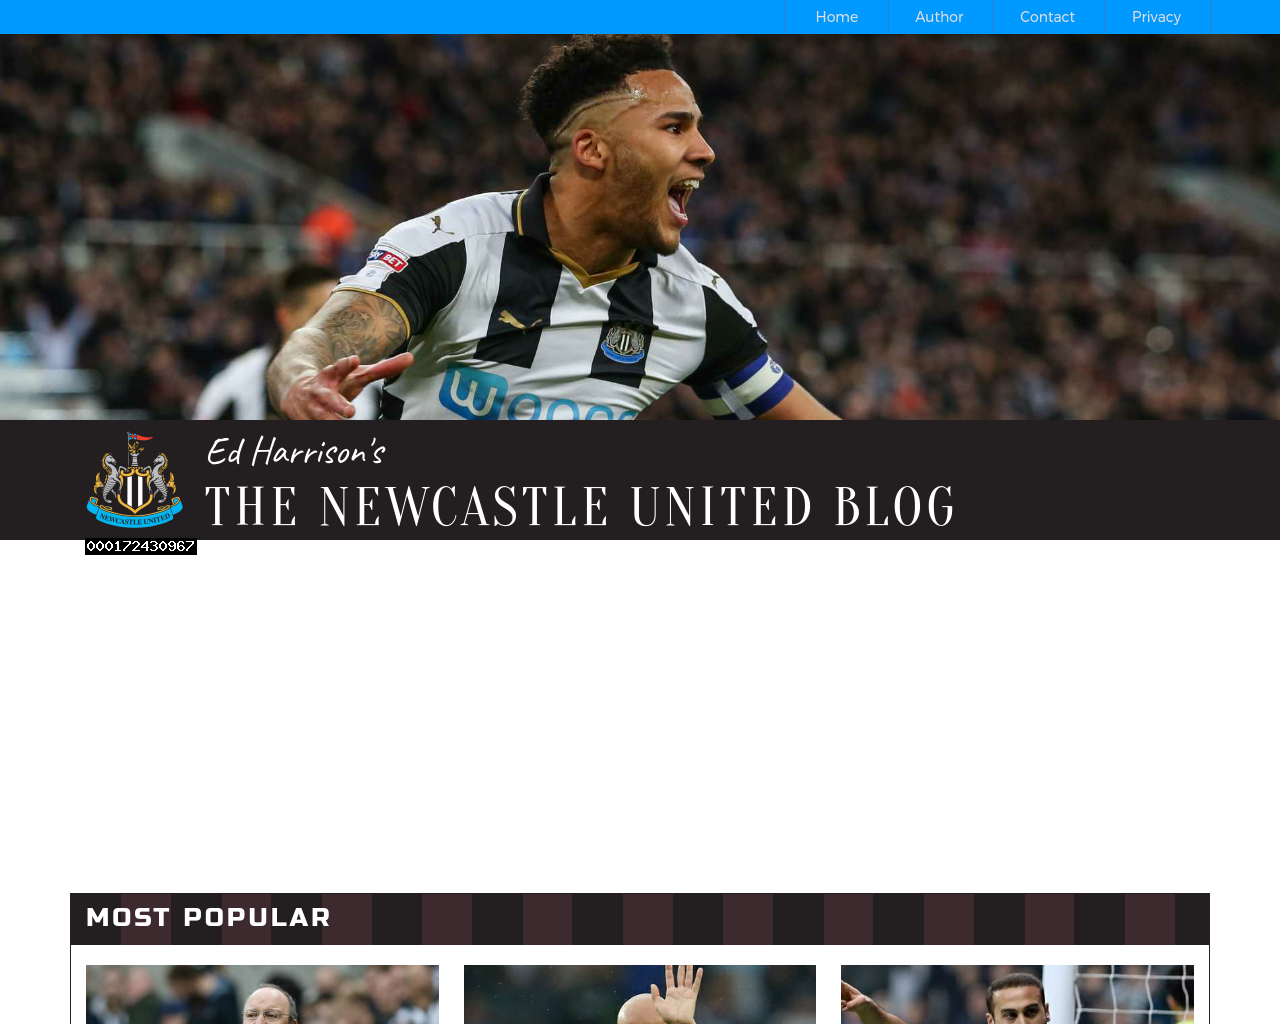 The-Newcastle-United-Blog-Advertising-Reviews-Pricing